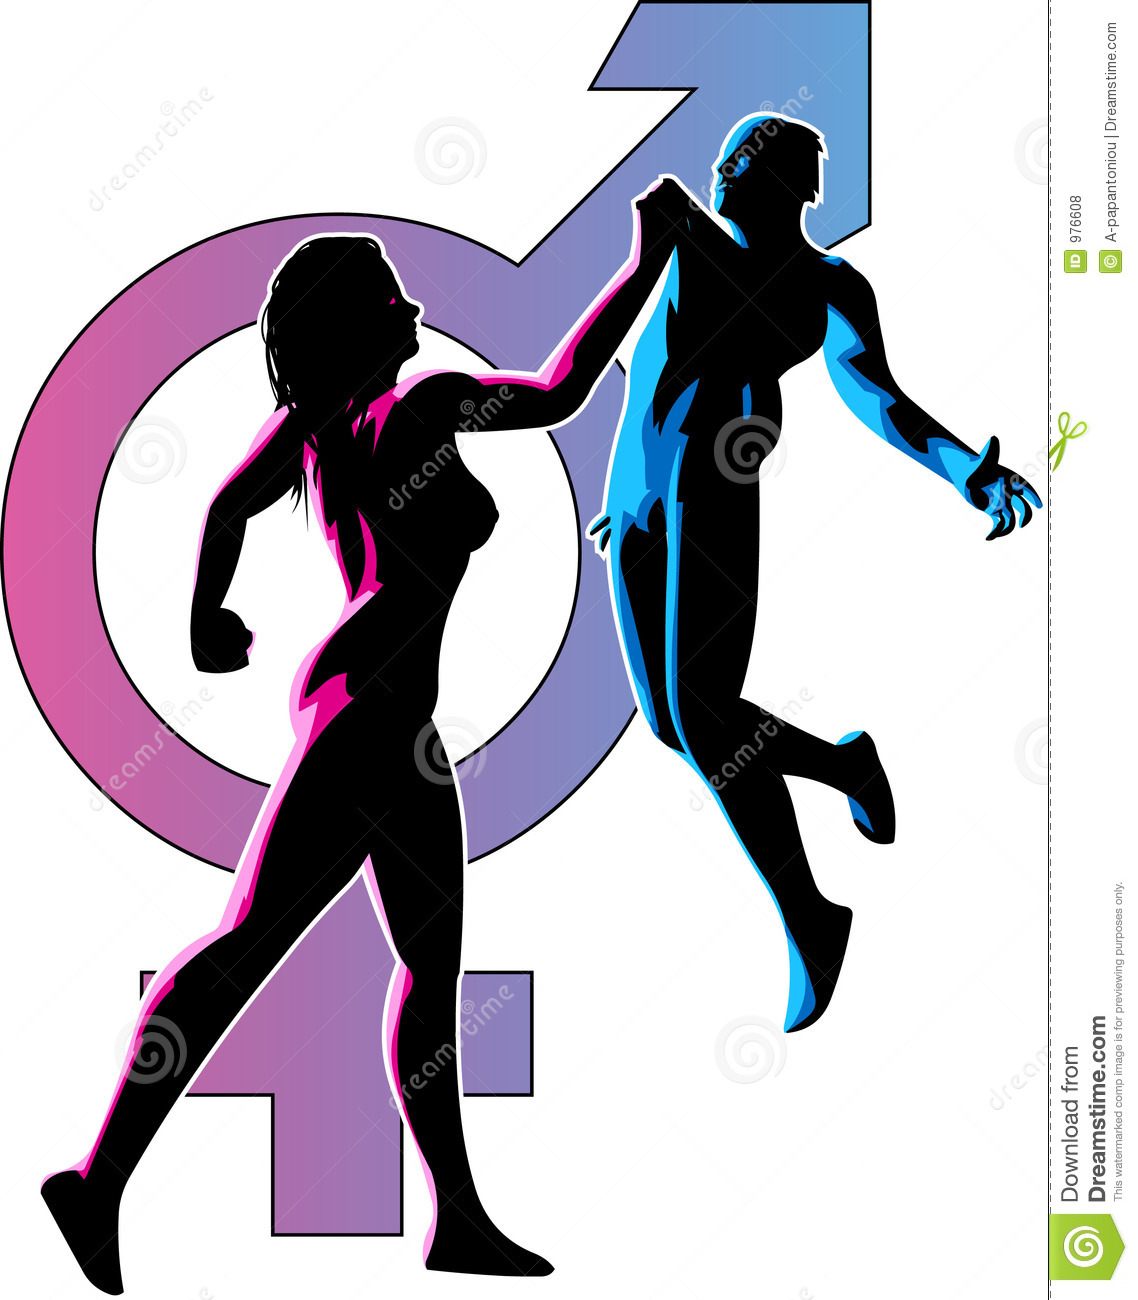 Related Keywords & Suggestions for Equality Clipart